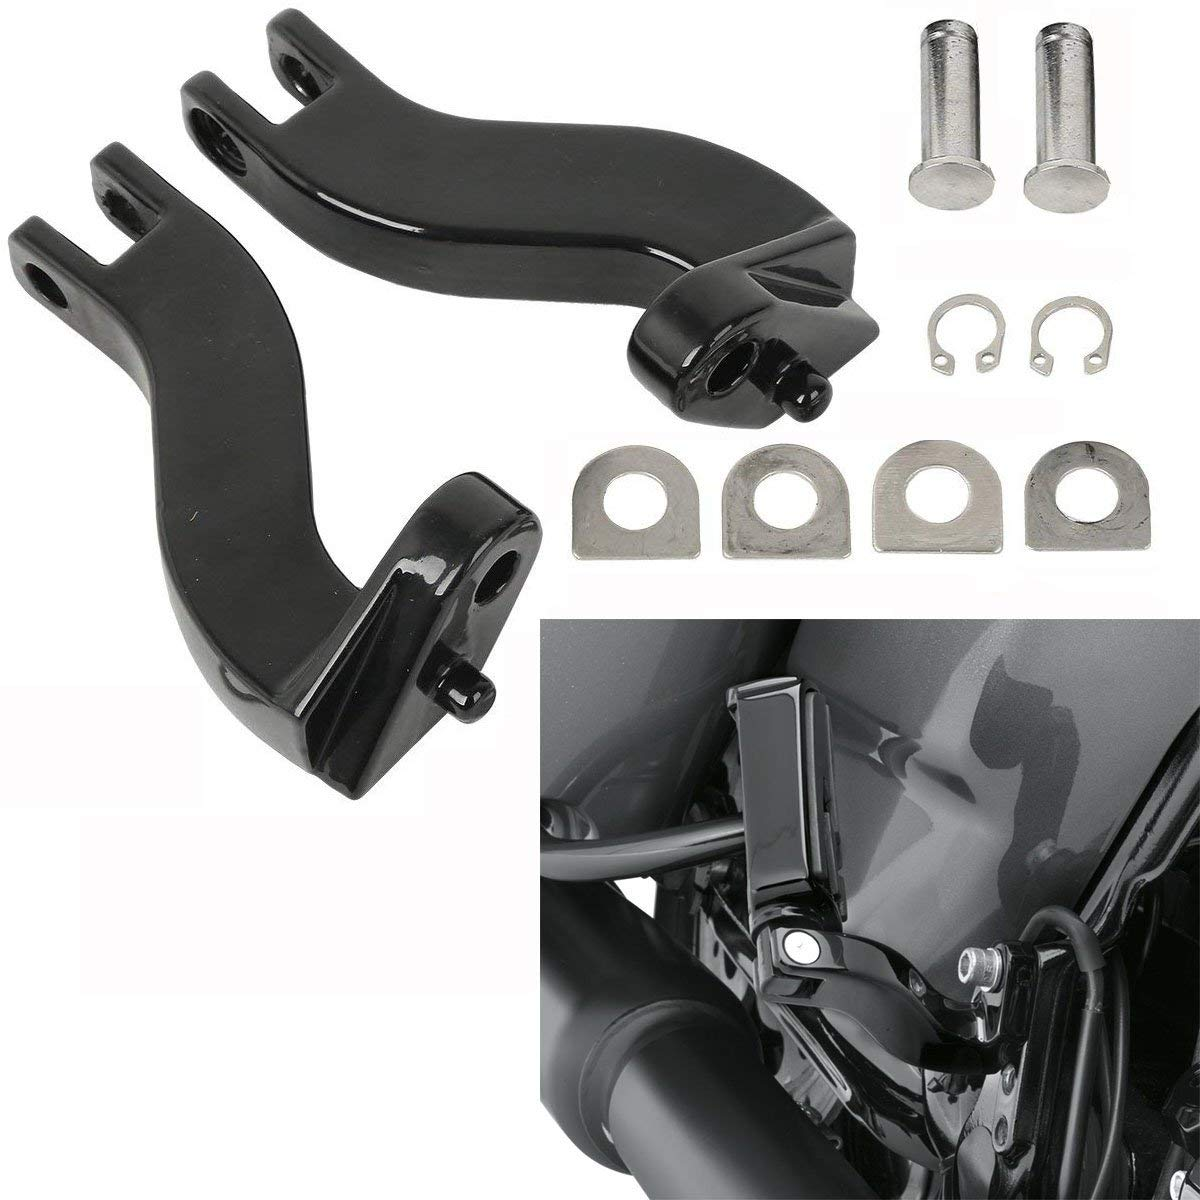 Replaces HD# 50198-97B Motorcycle 10mm Rear Foot Peg Mount Kits Compatible with Harley Touring Road Electra Street Glide Road King 1993-2018